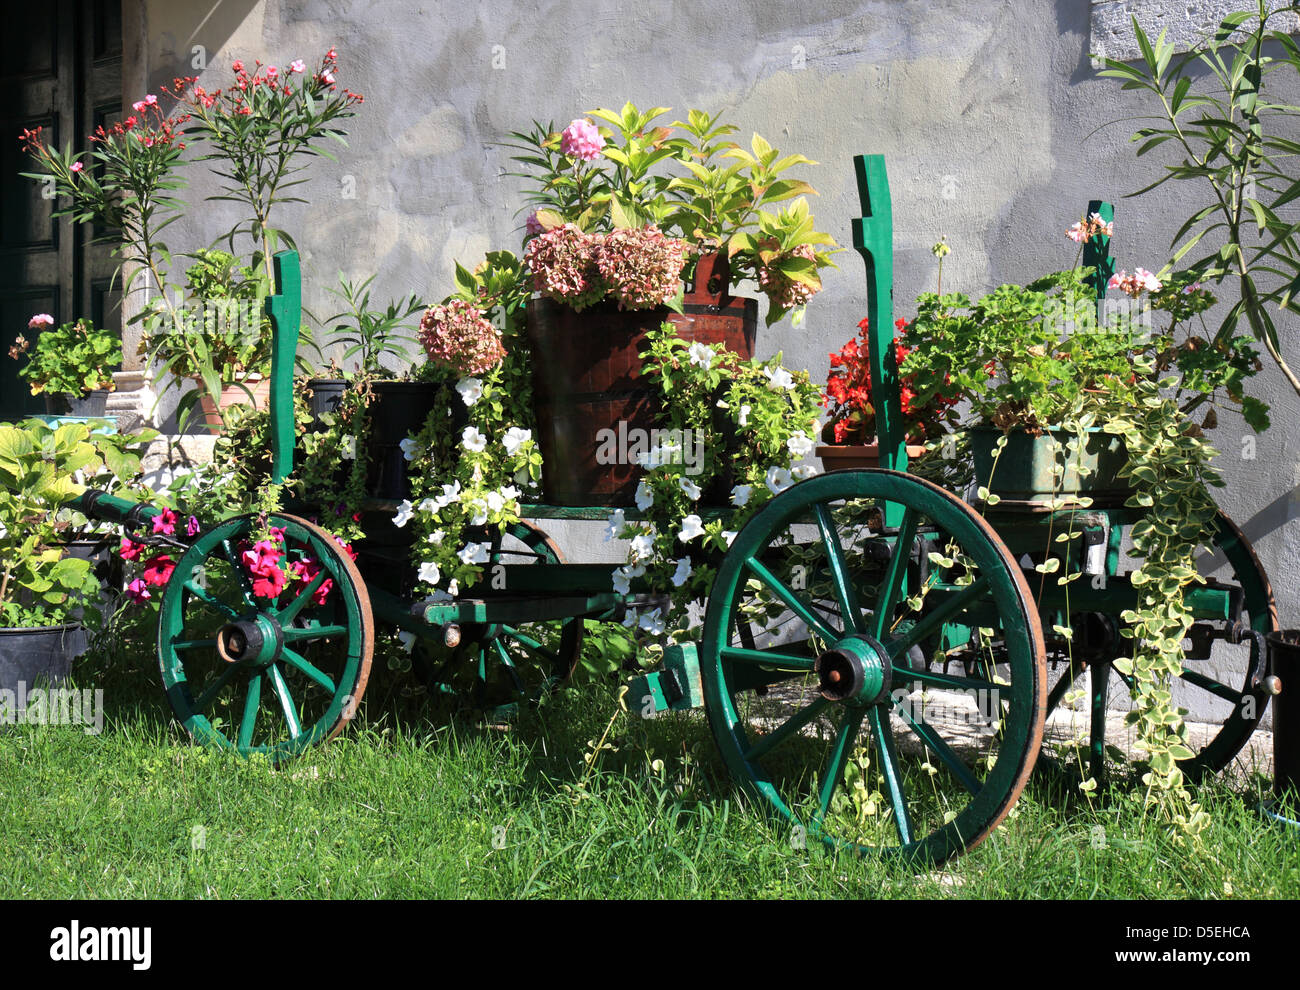 Old Wooden Wagon Flowers Decorative Stock Photos & Old Wooden Wagon ...